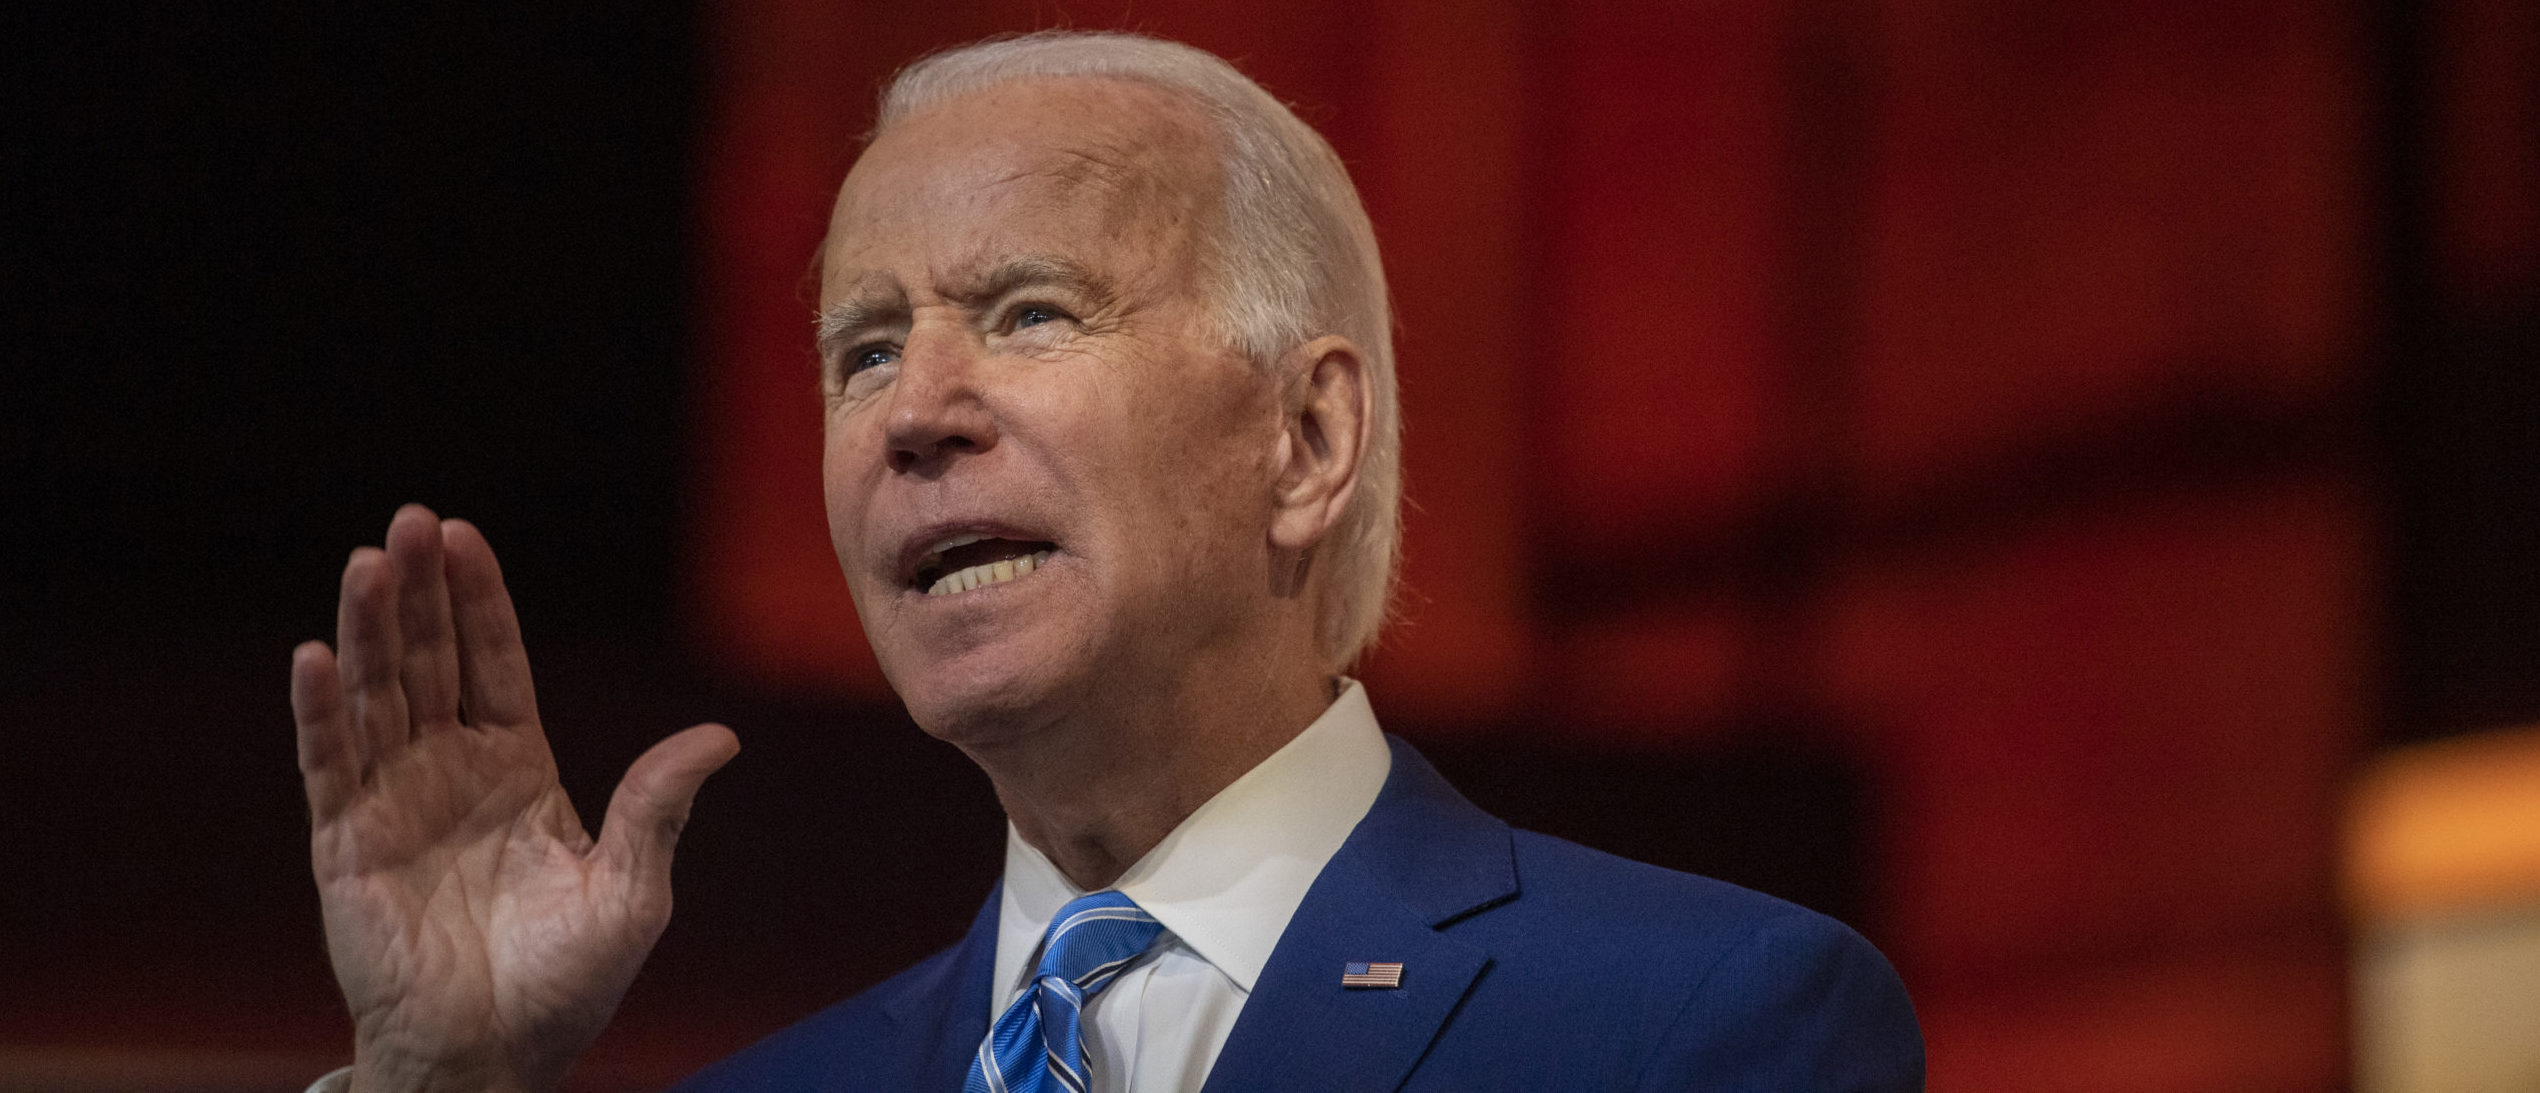 President-elect Joe Biden delivers a Thanksgiving address at the Queen Theatre on November 25, 2020 in Wilmington, Delaware. (Mark Makela/Getty Images)